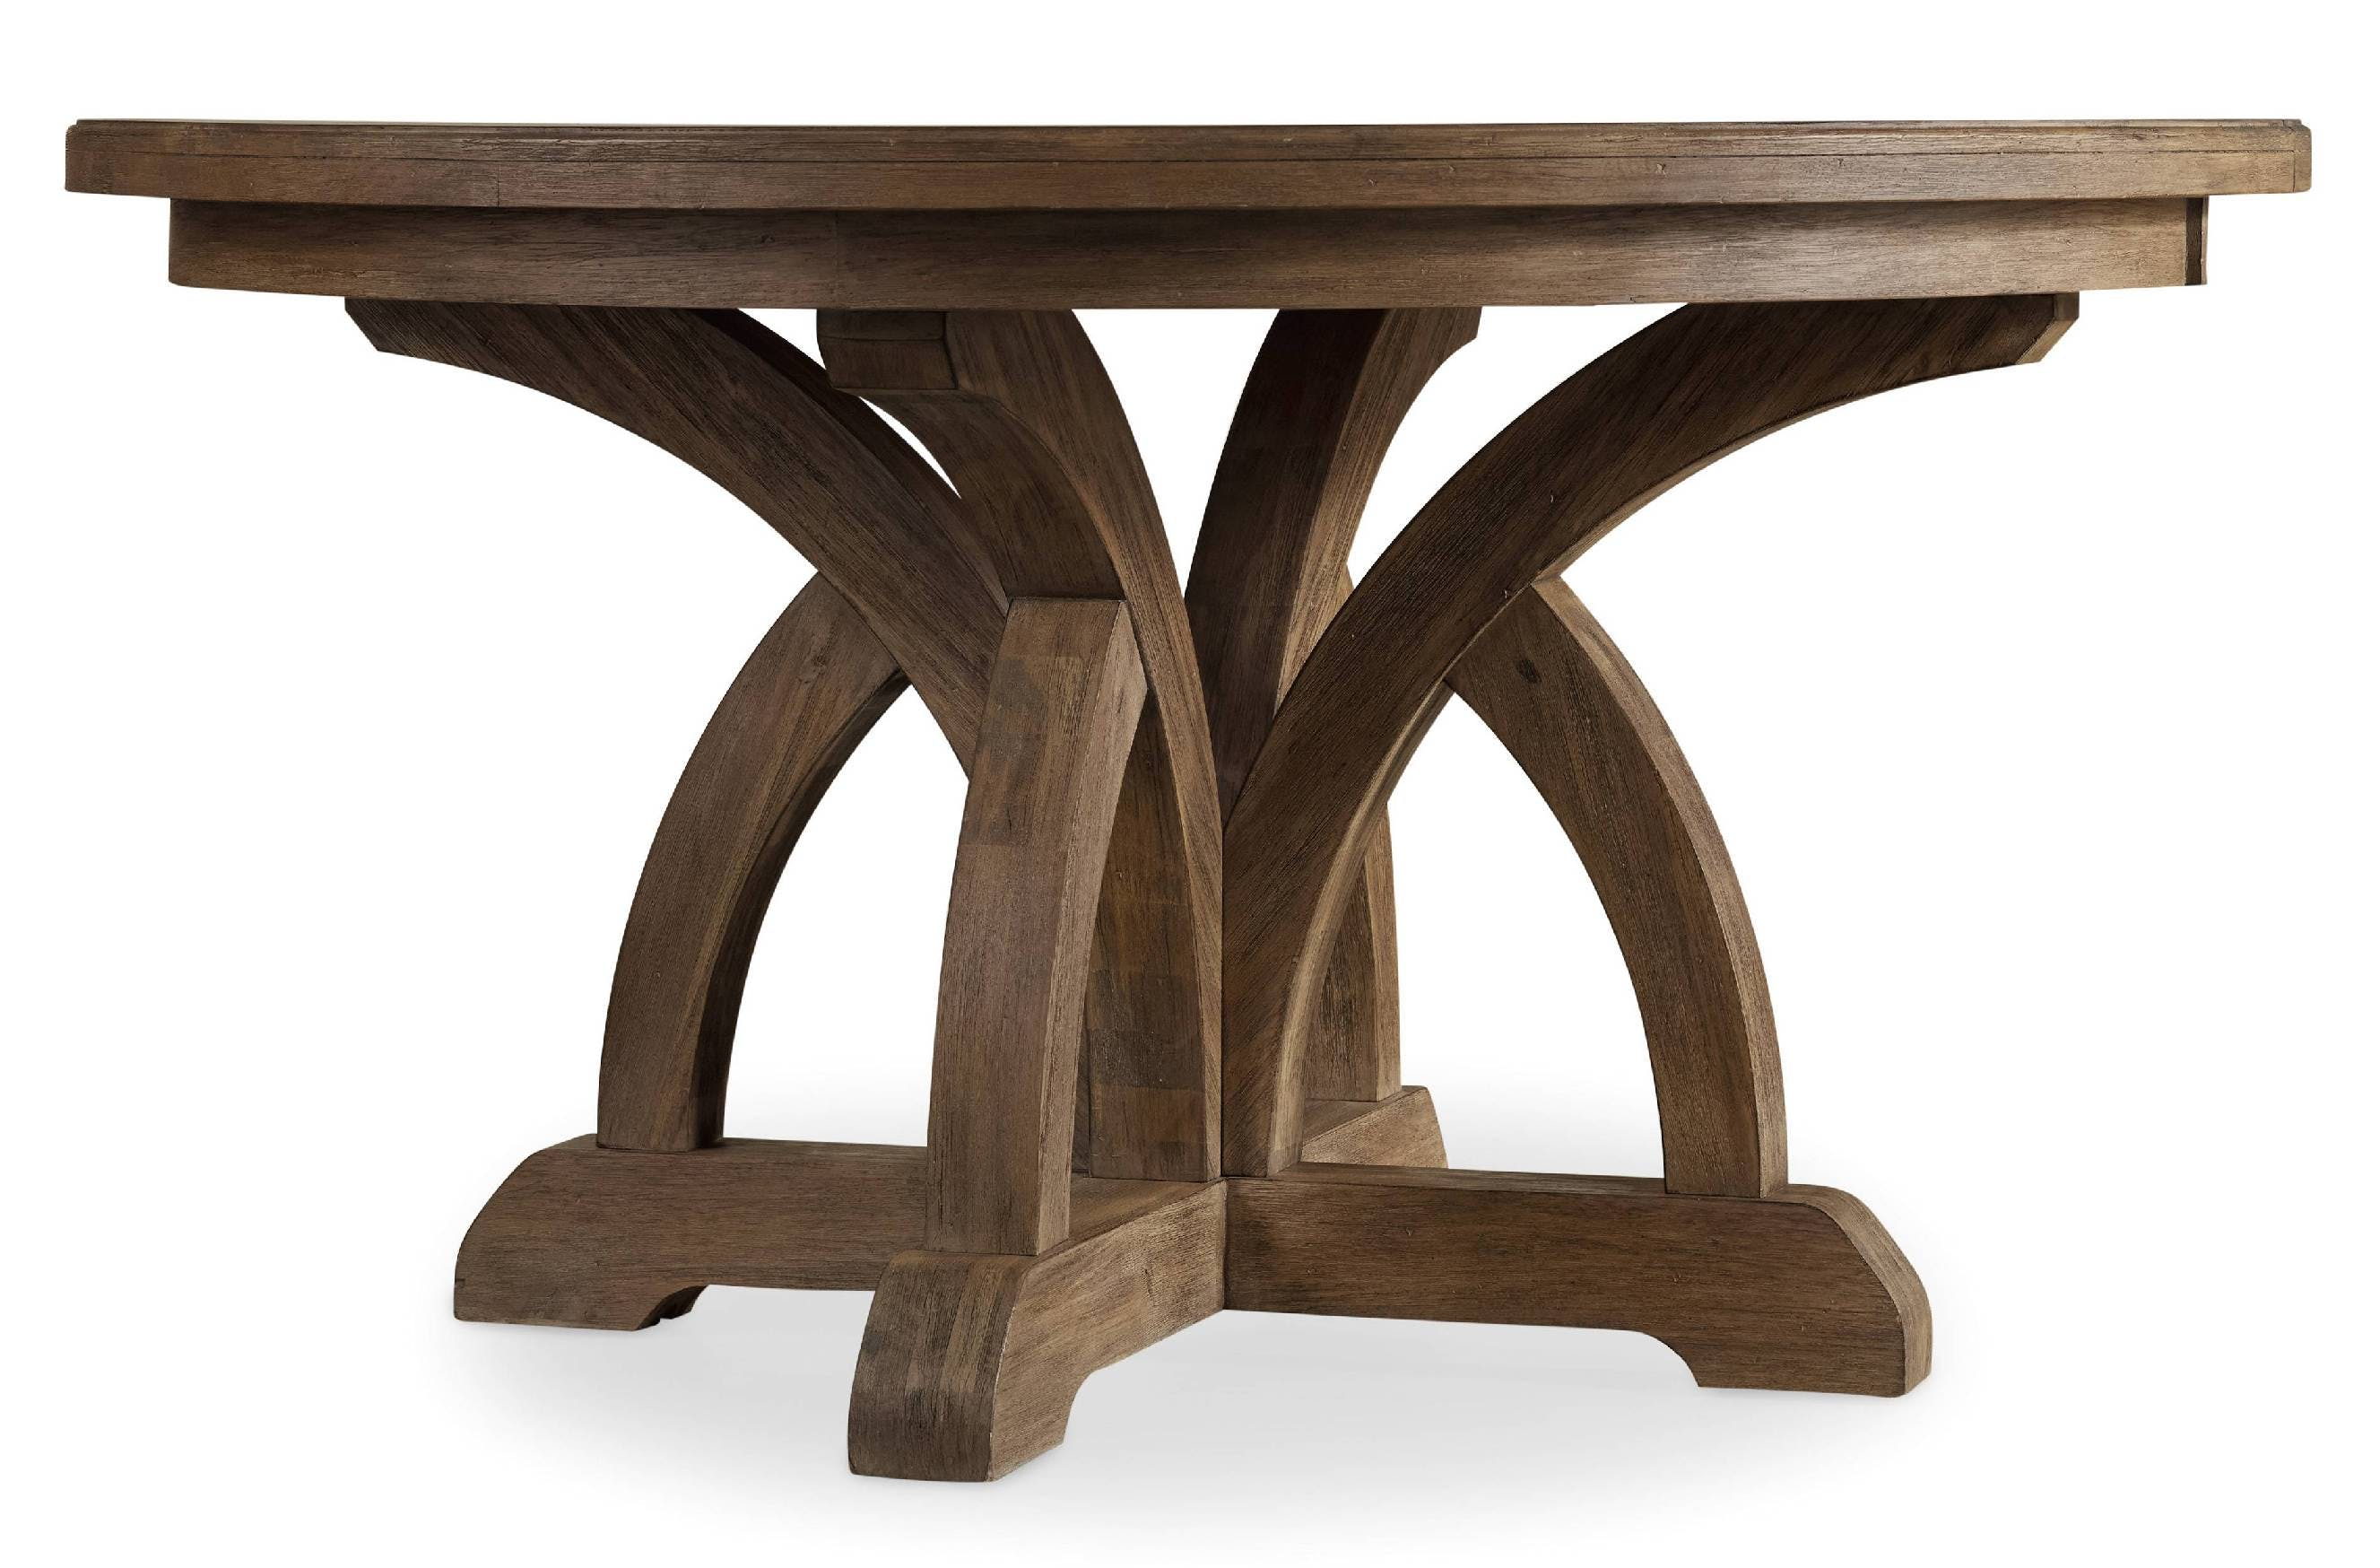 Images of round dining table with leaf hooker furniture corsica round dining table w/1-18in leaf 5180-75203 jpvlrzd